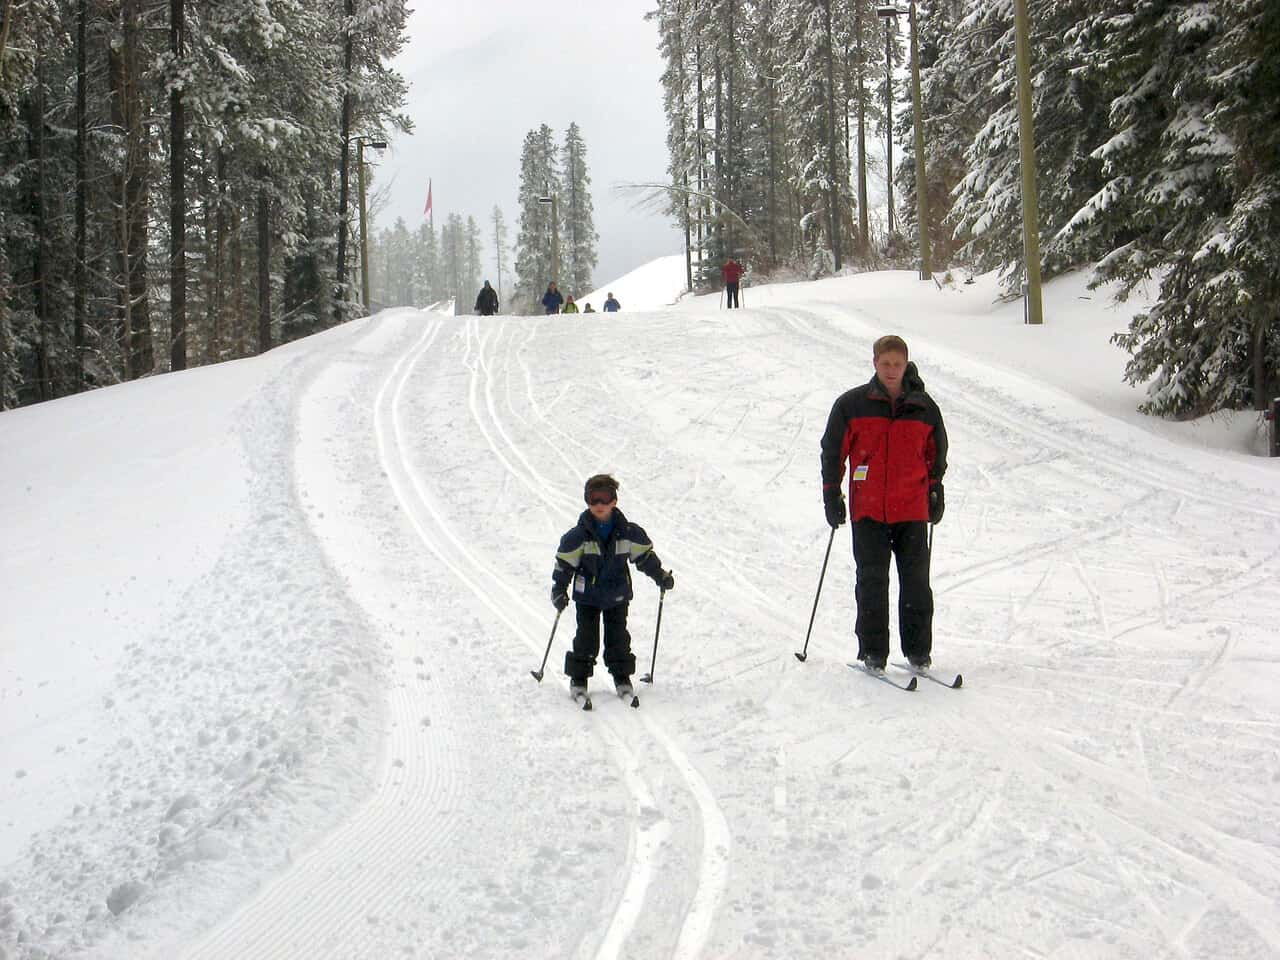 March-2009,-Morgan-cross-country-skiing-for-the-first-time